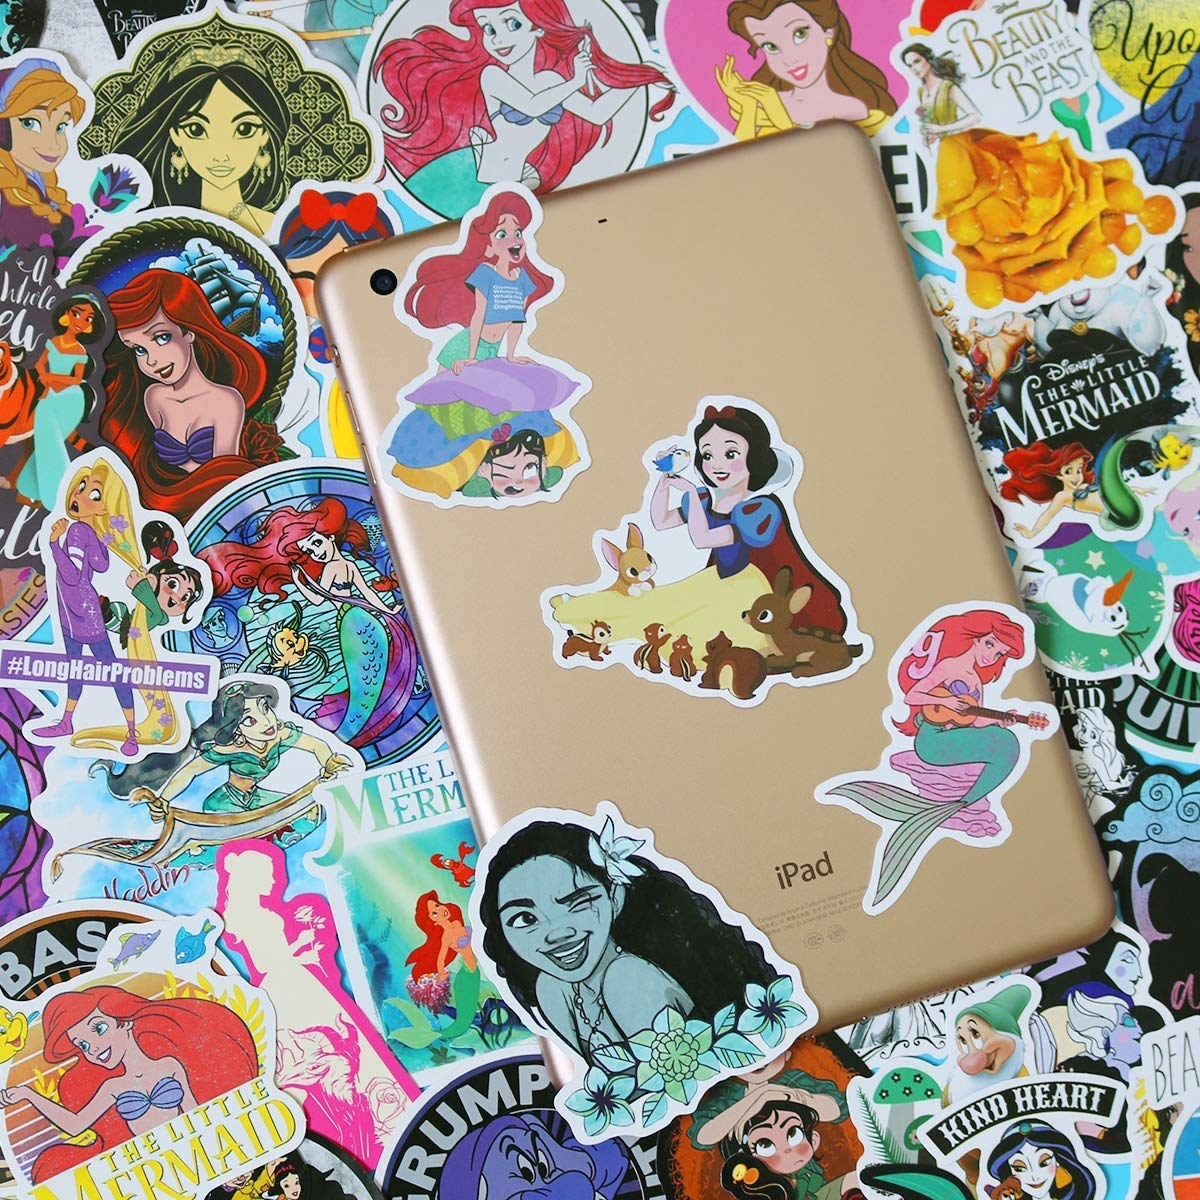 """A whole mess of Disney princess stickers in different styles on a table, from classically animated to more """"modern"""" versions, with an iPad with some stickers on it resting on top"""